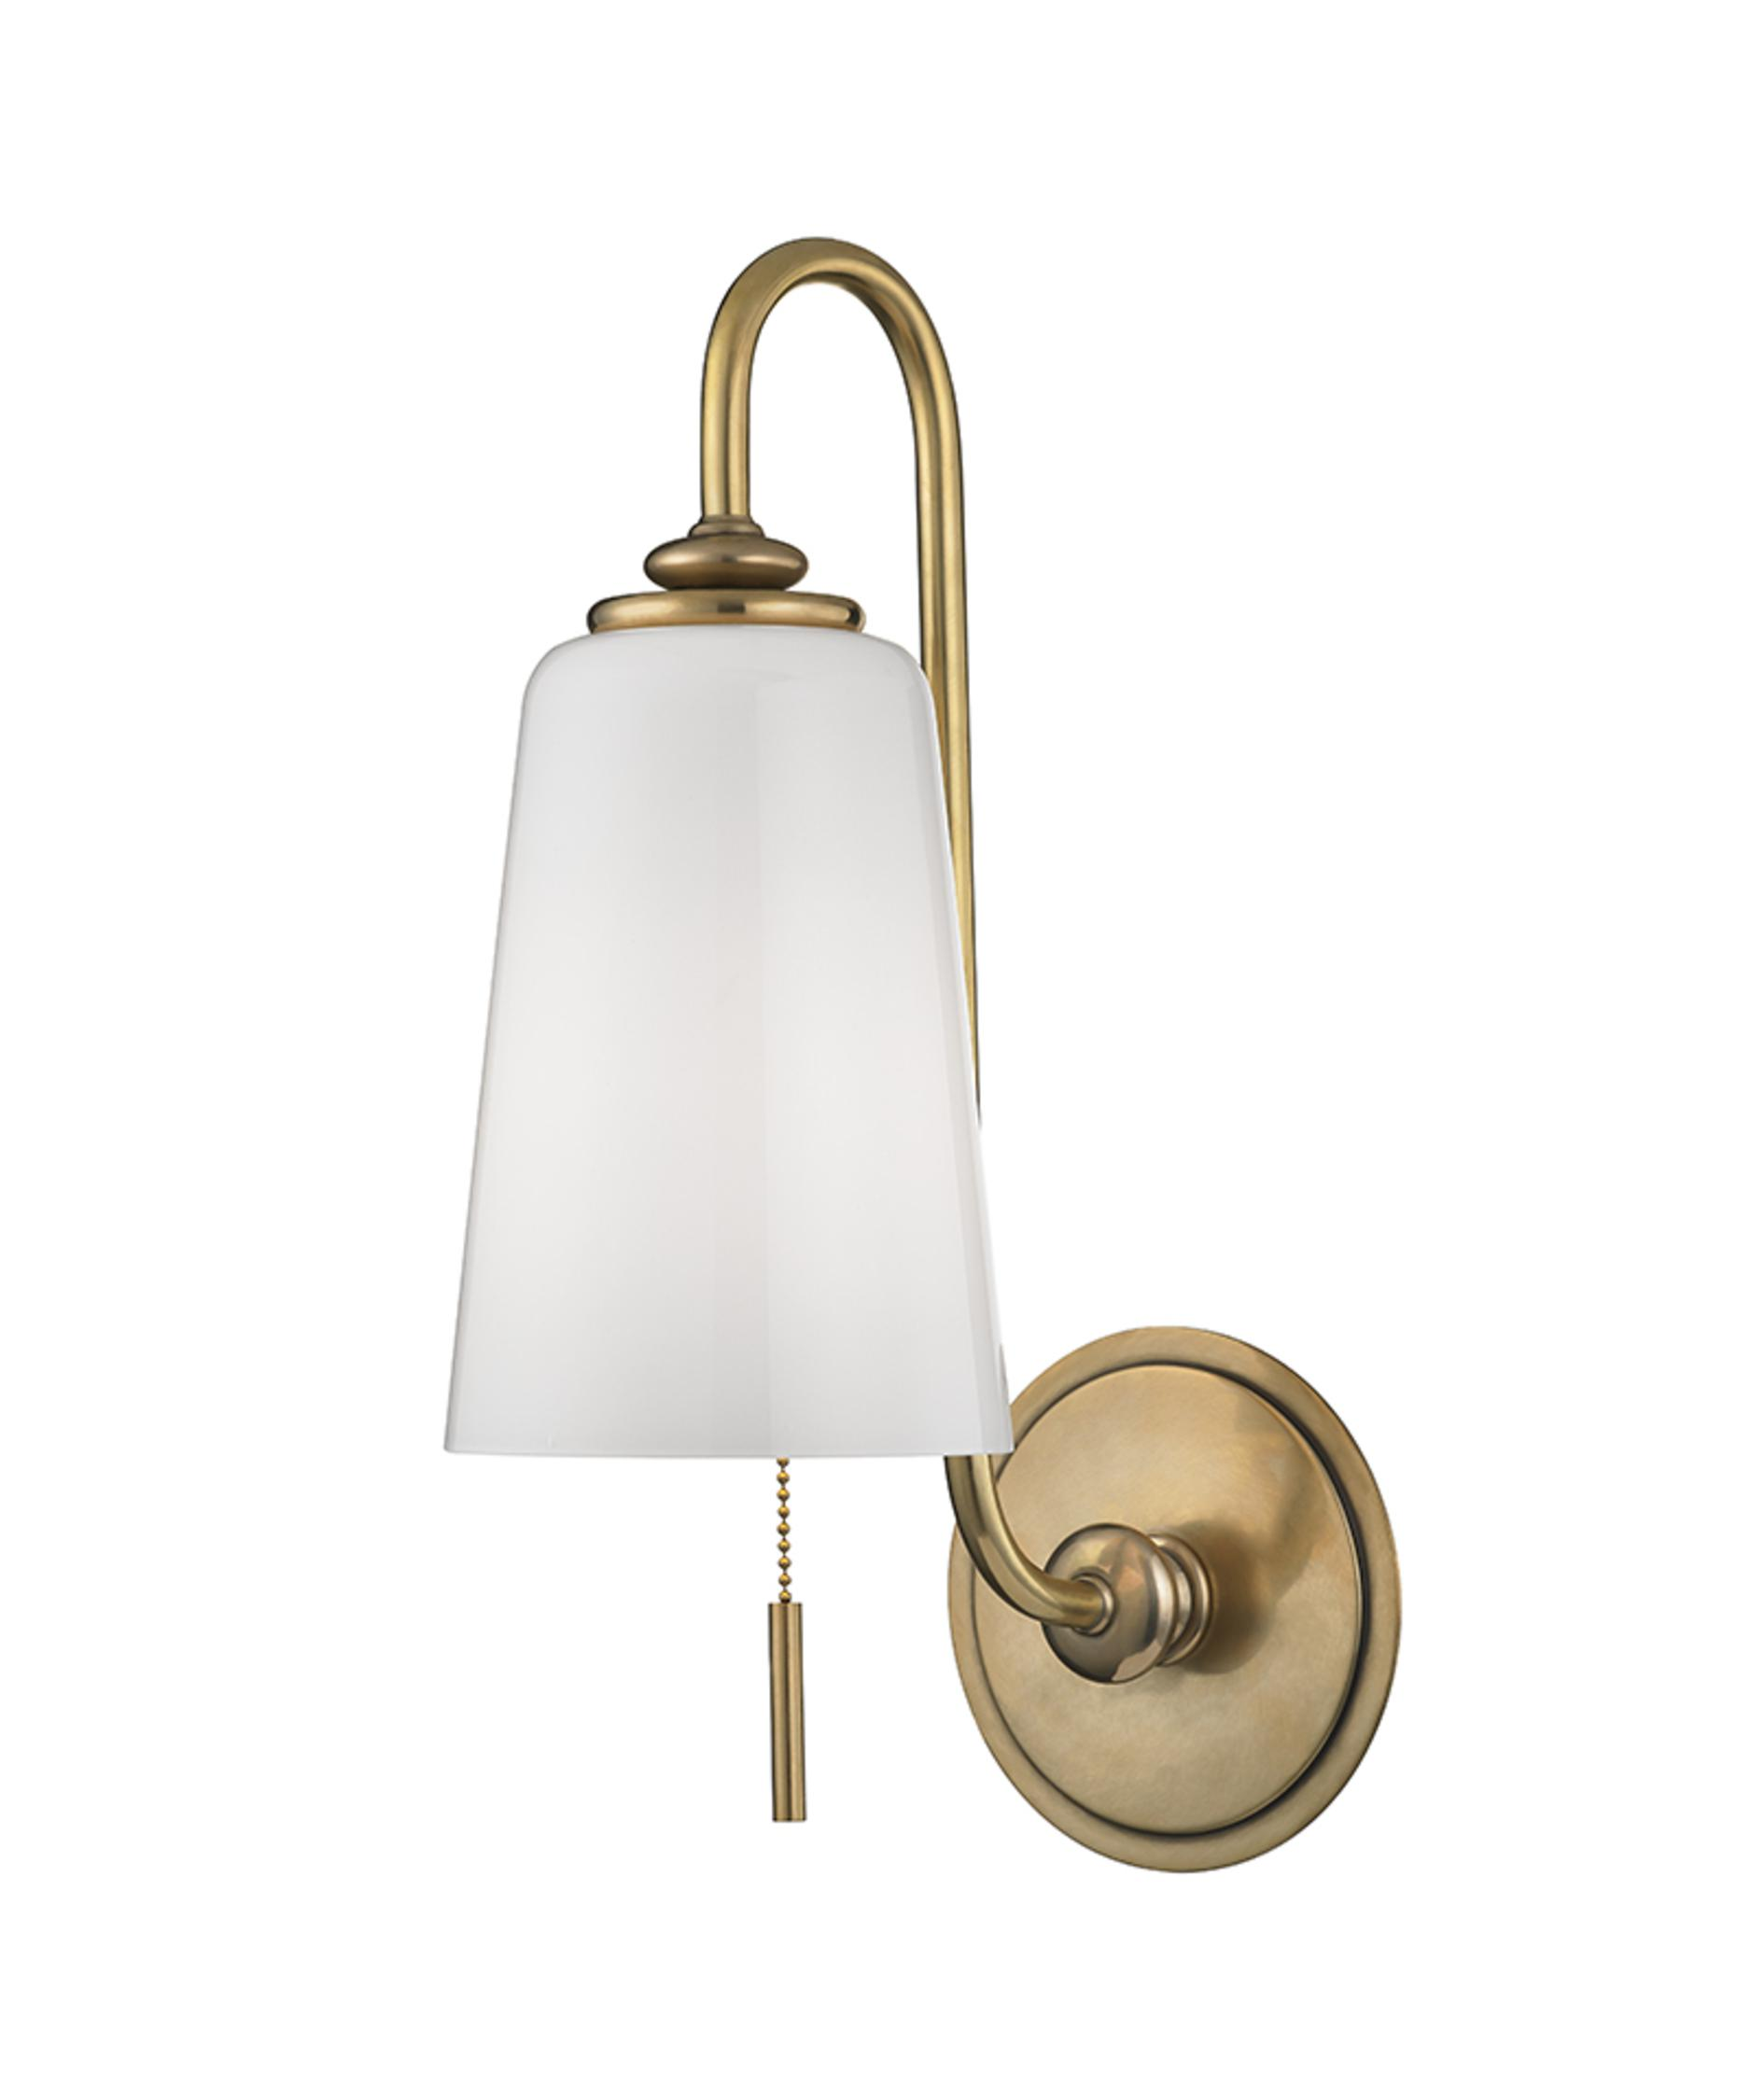 Wall Lights Extraordinary Sconce With On Off Switch Ceiling Pull Chain Lowes - Wall Sconce With ...